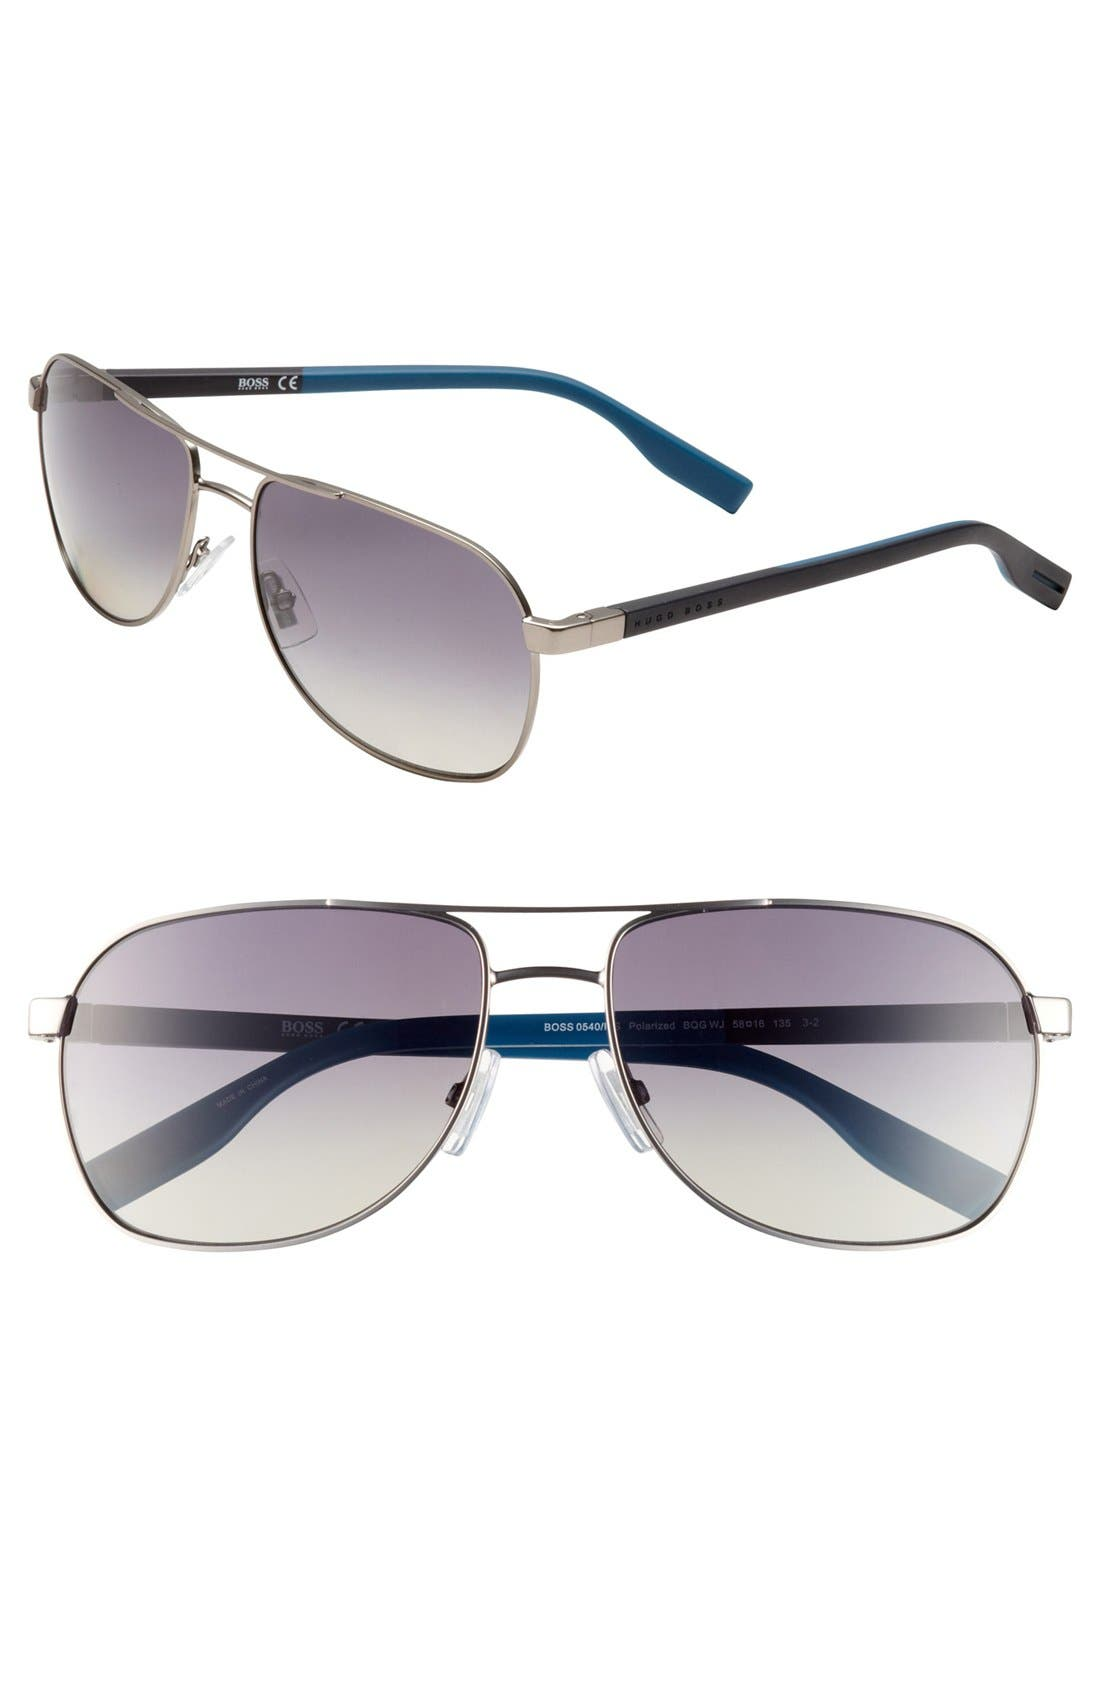 Alternate Image 1 Selected - BOSS Polarized Aviator Sunglasses